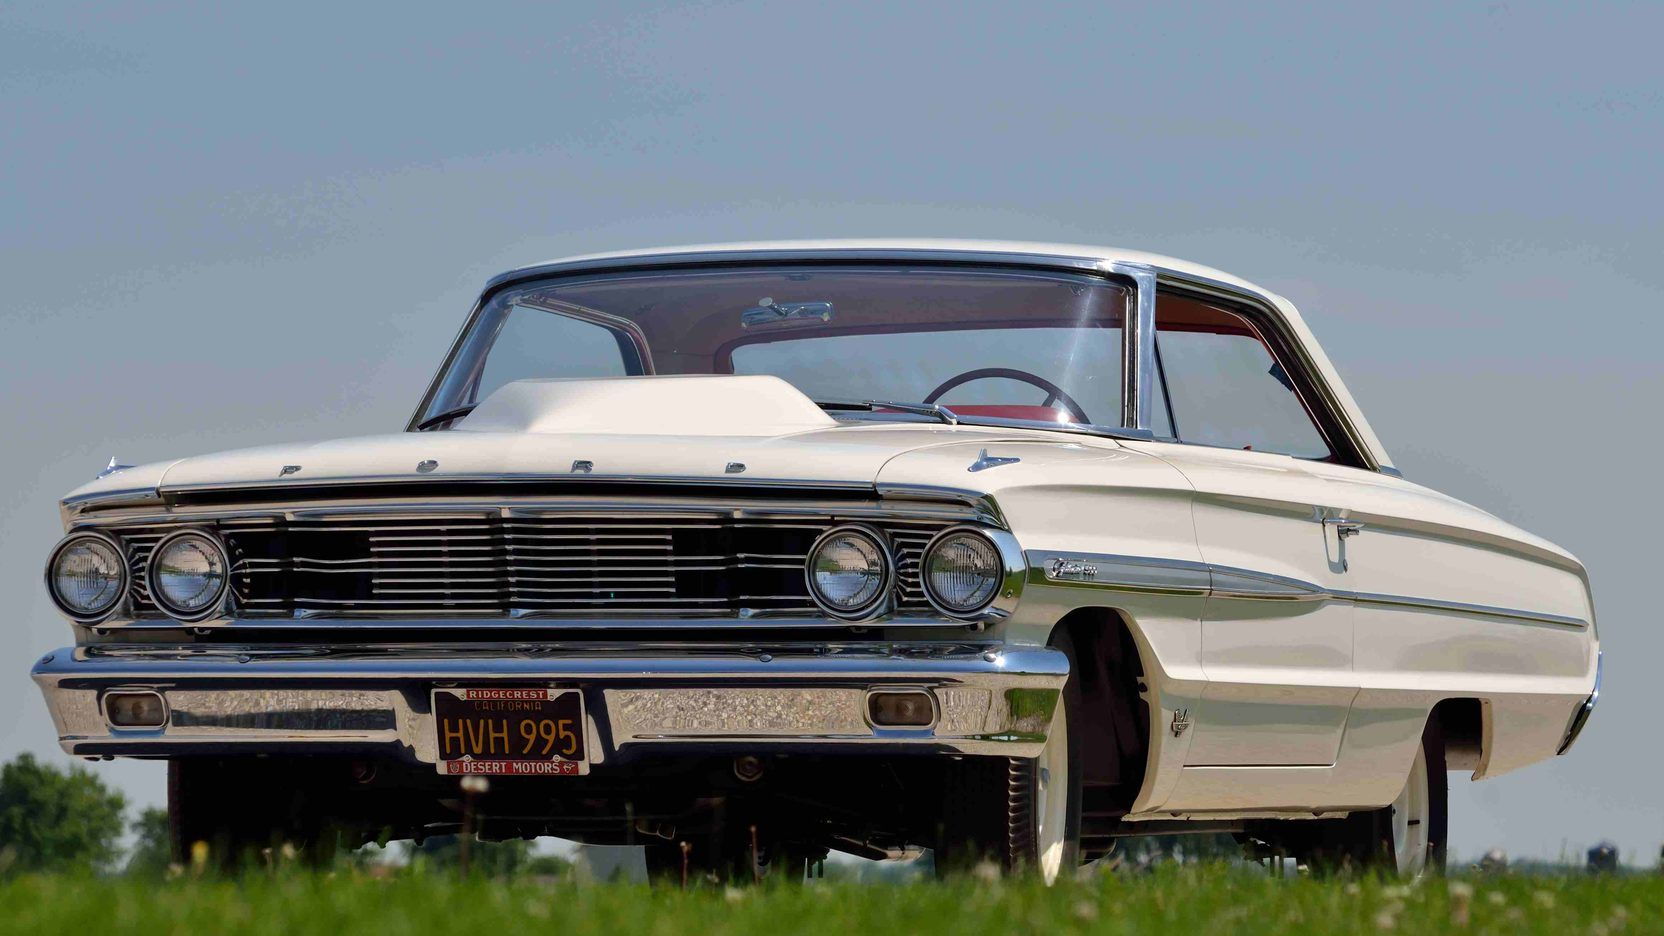 1964 Ford Galaxie 500 Lightweight presented as Lot F134.1